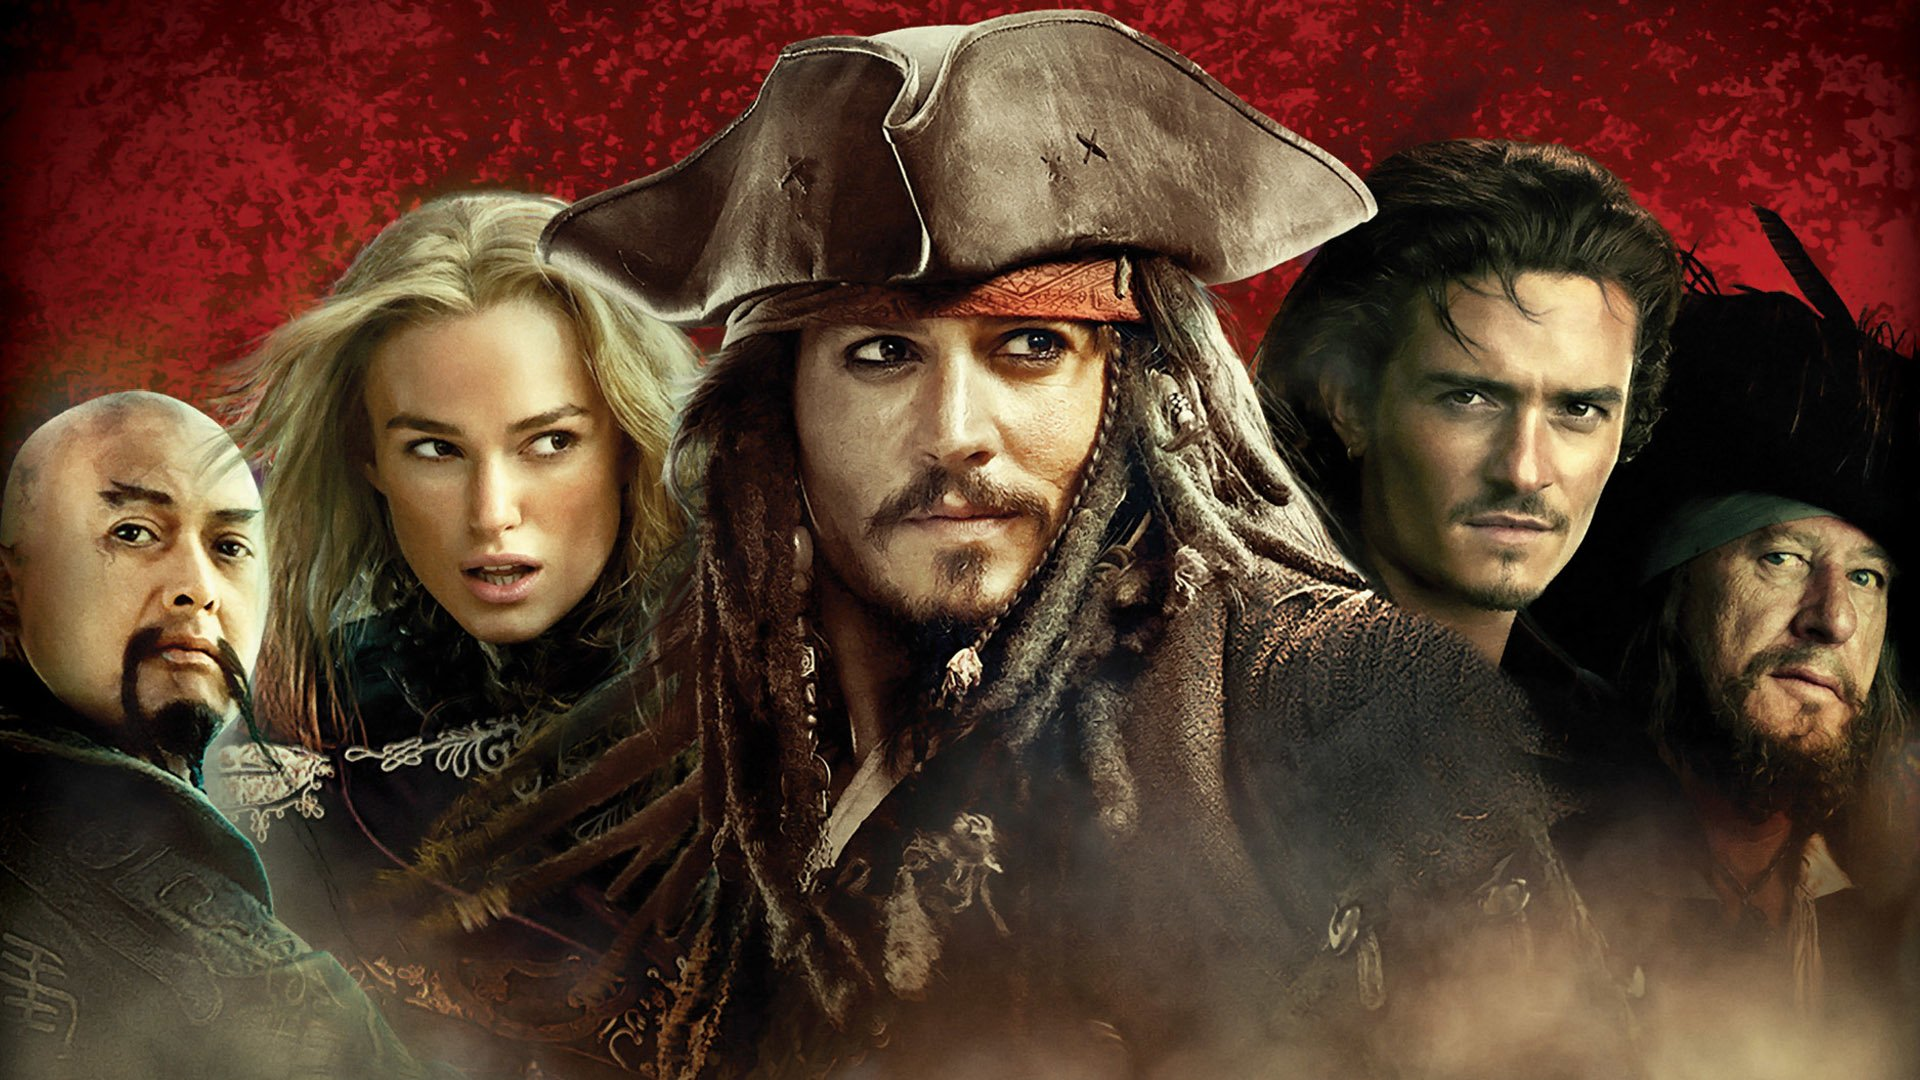 Pirates of the Caribbean film series  Wikipedia